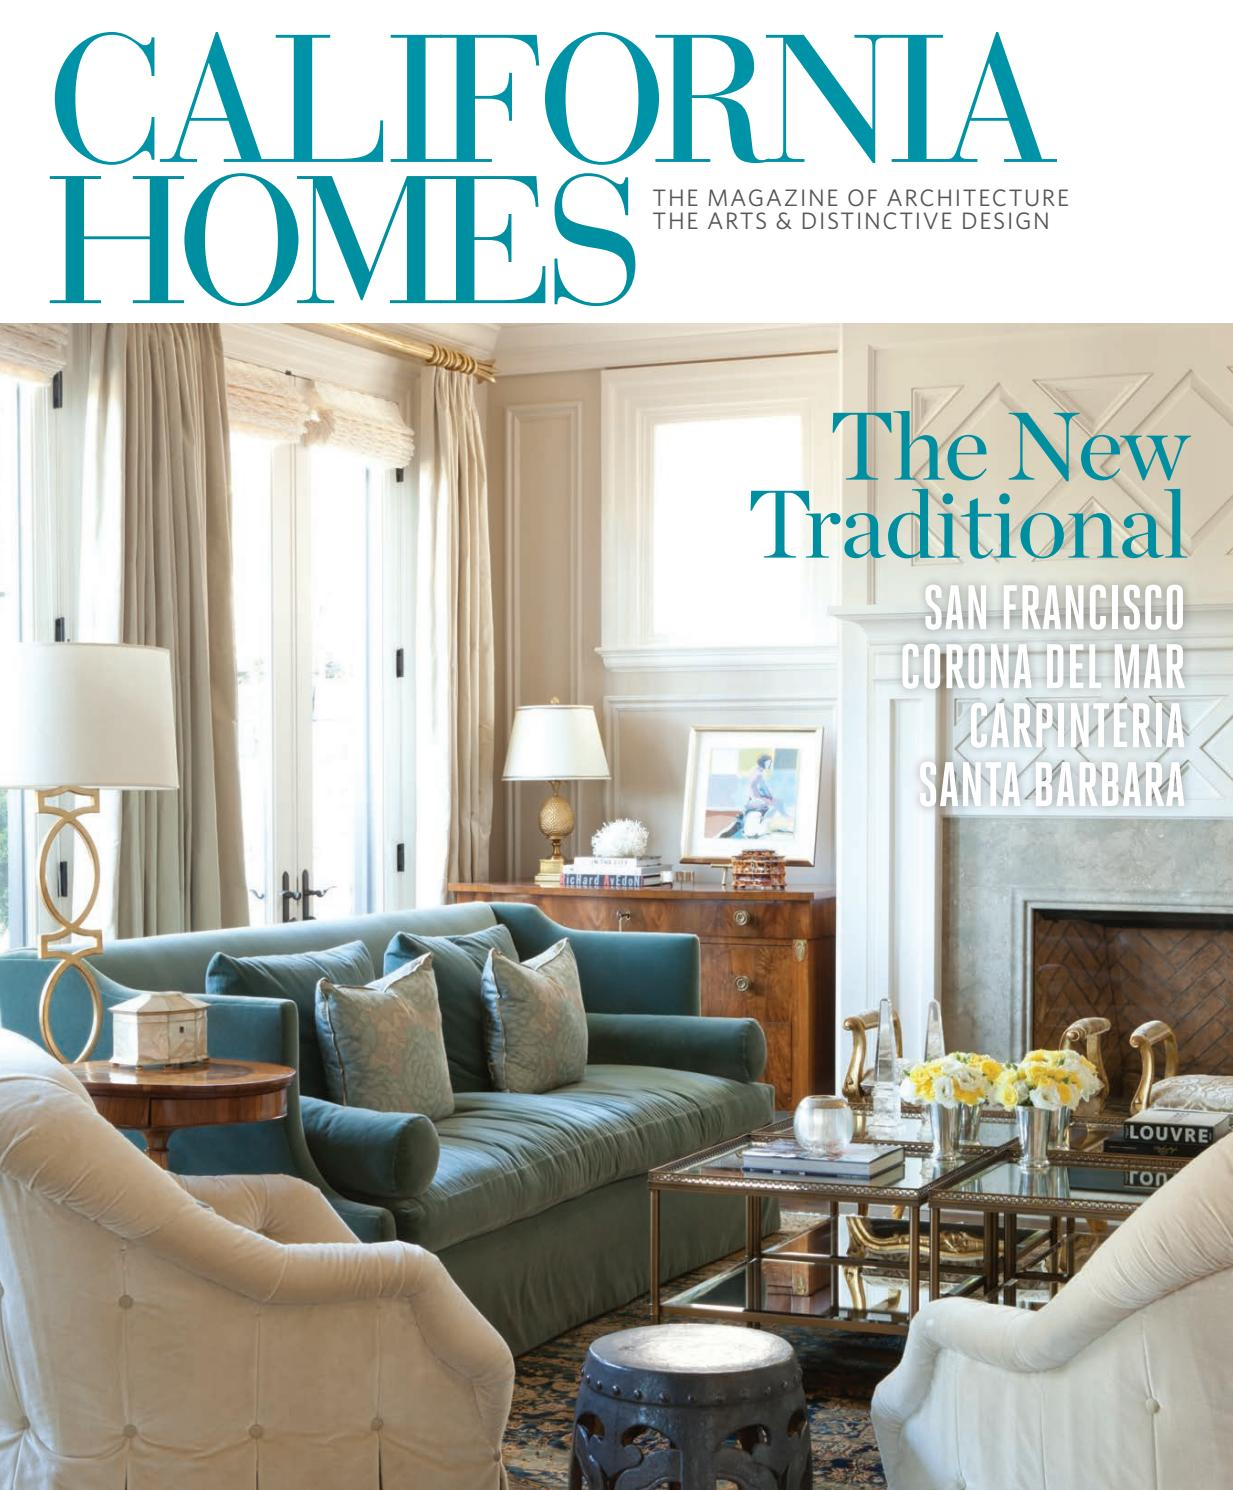 California homes spring 2016 by california homes for Home builders magazine